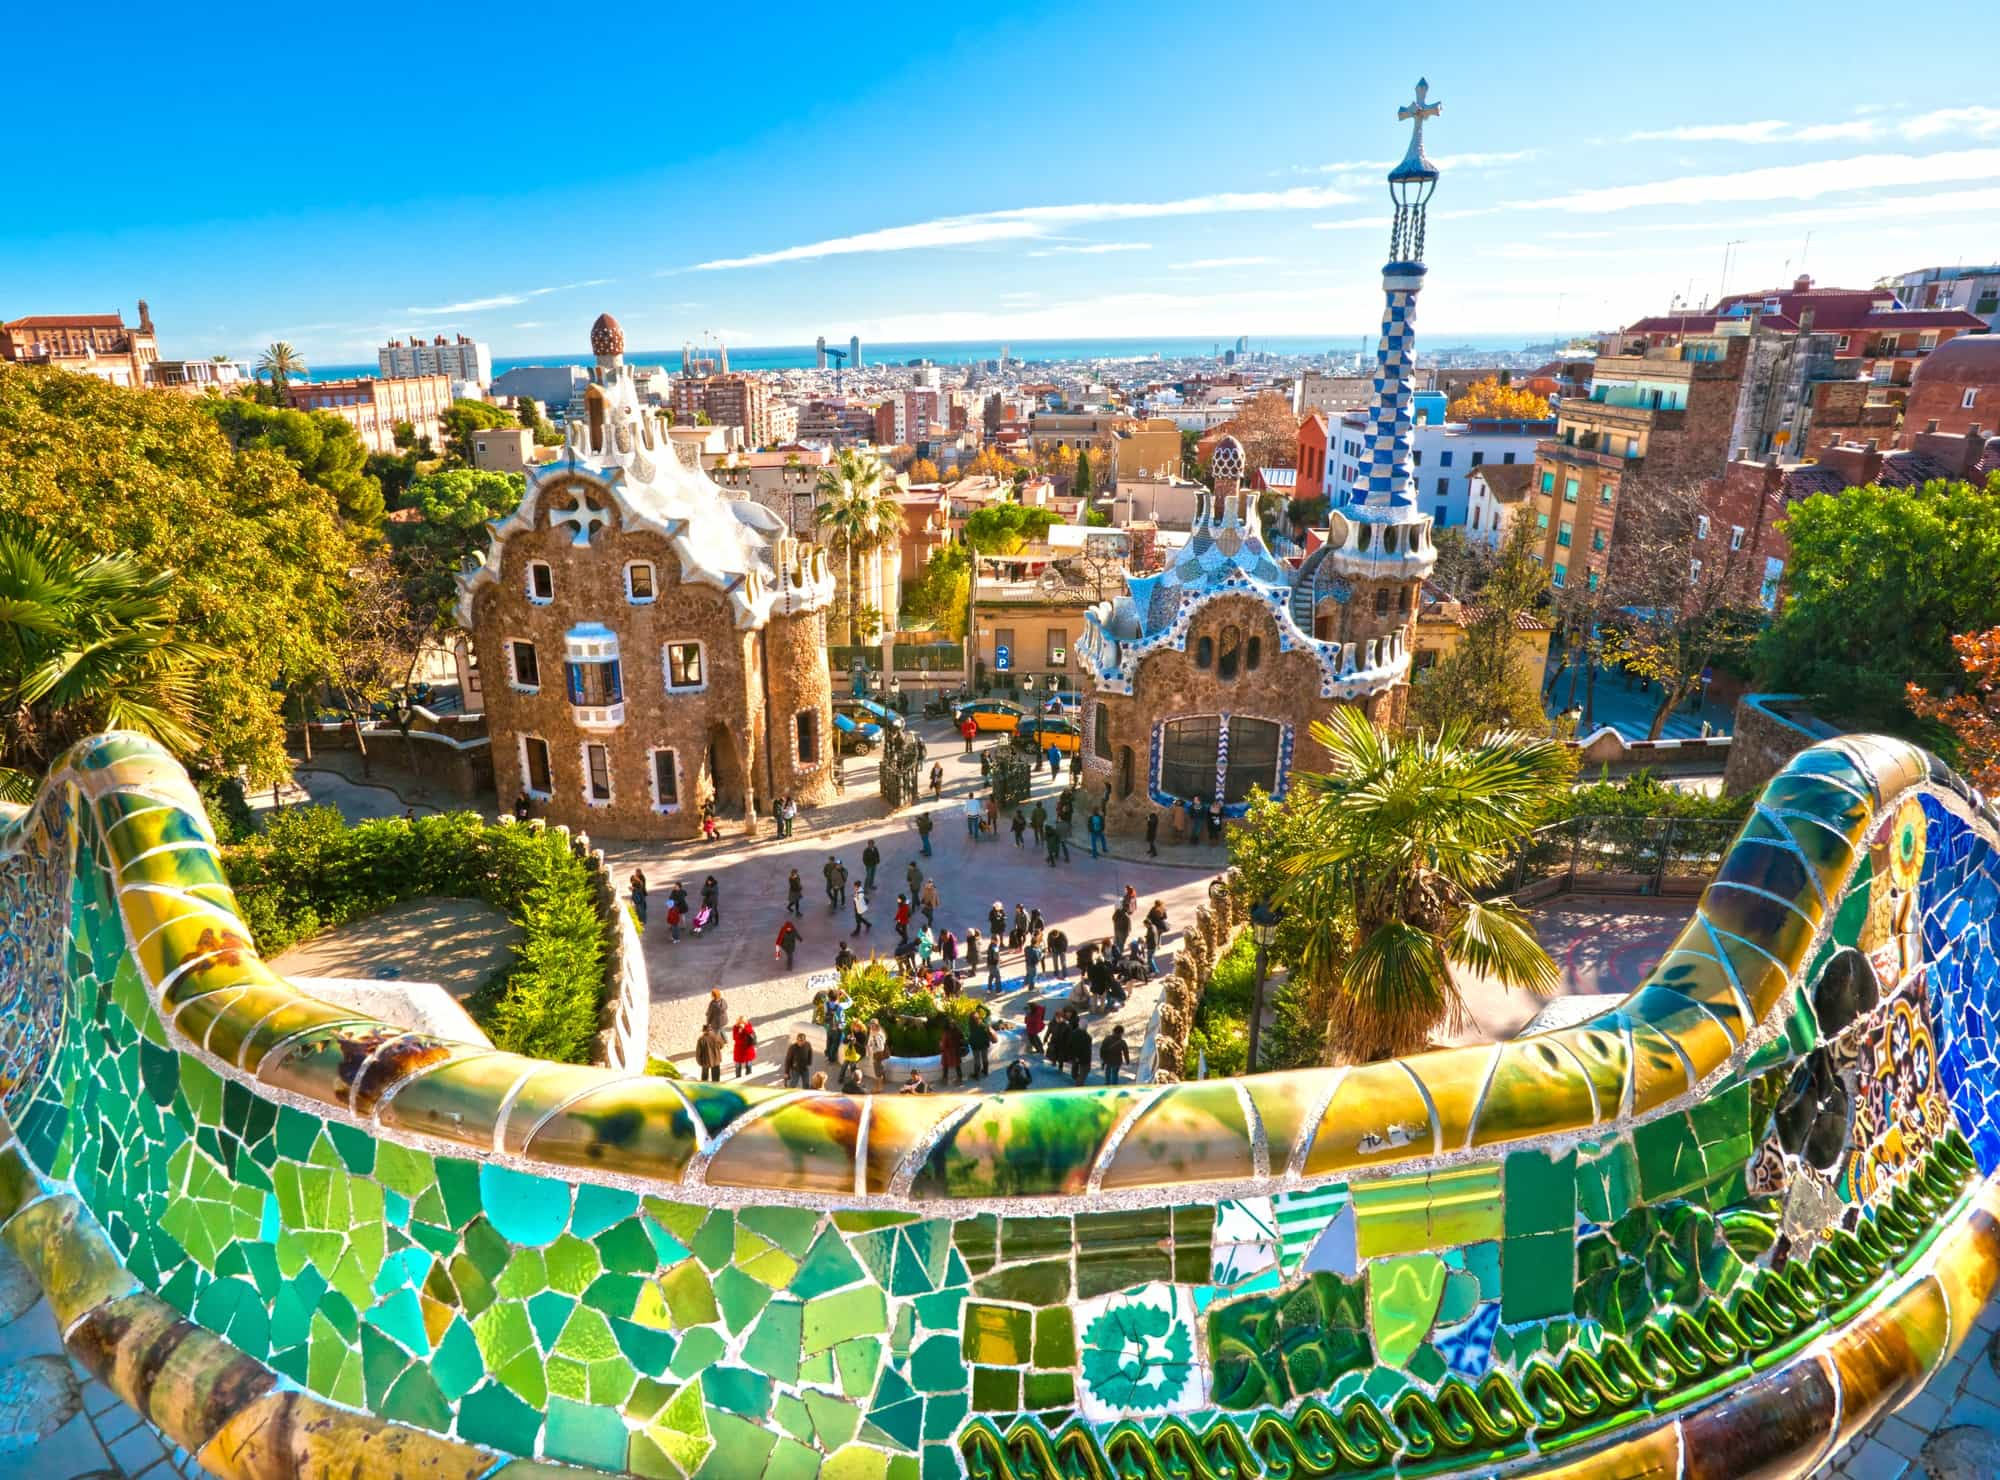 b9b4caf249b The Best and Worst of Barcelona with Kids - TravelMamas.com